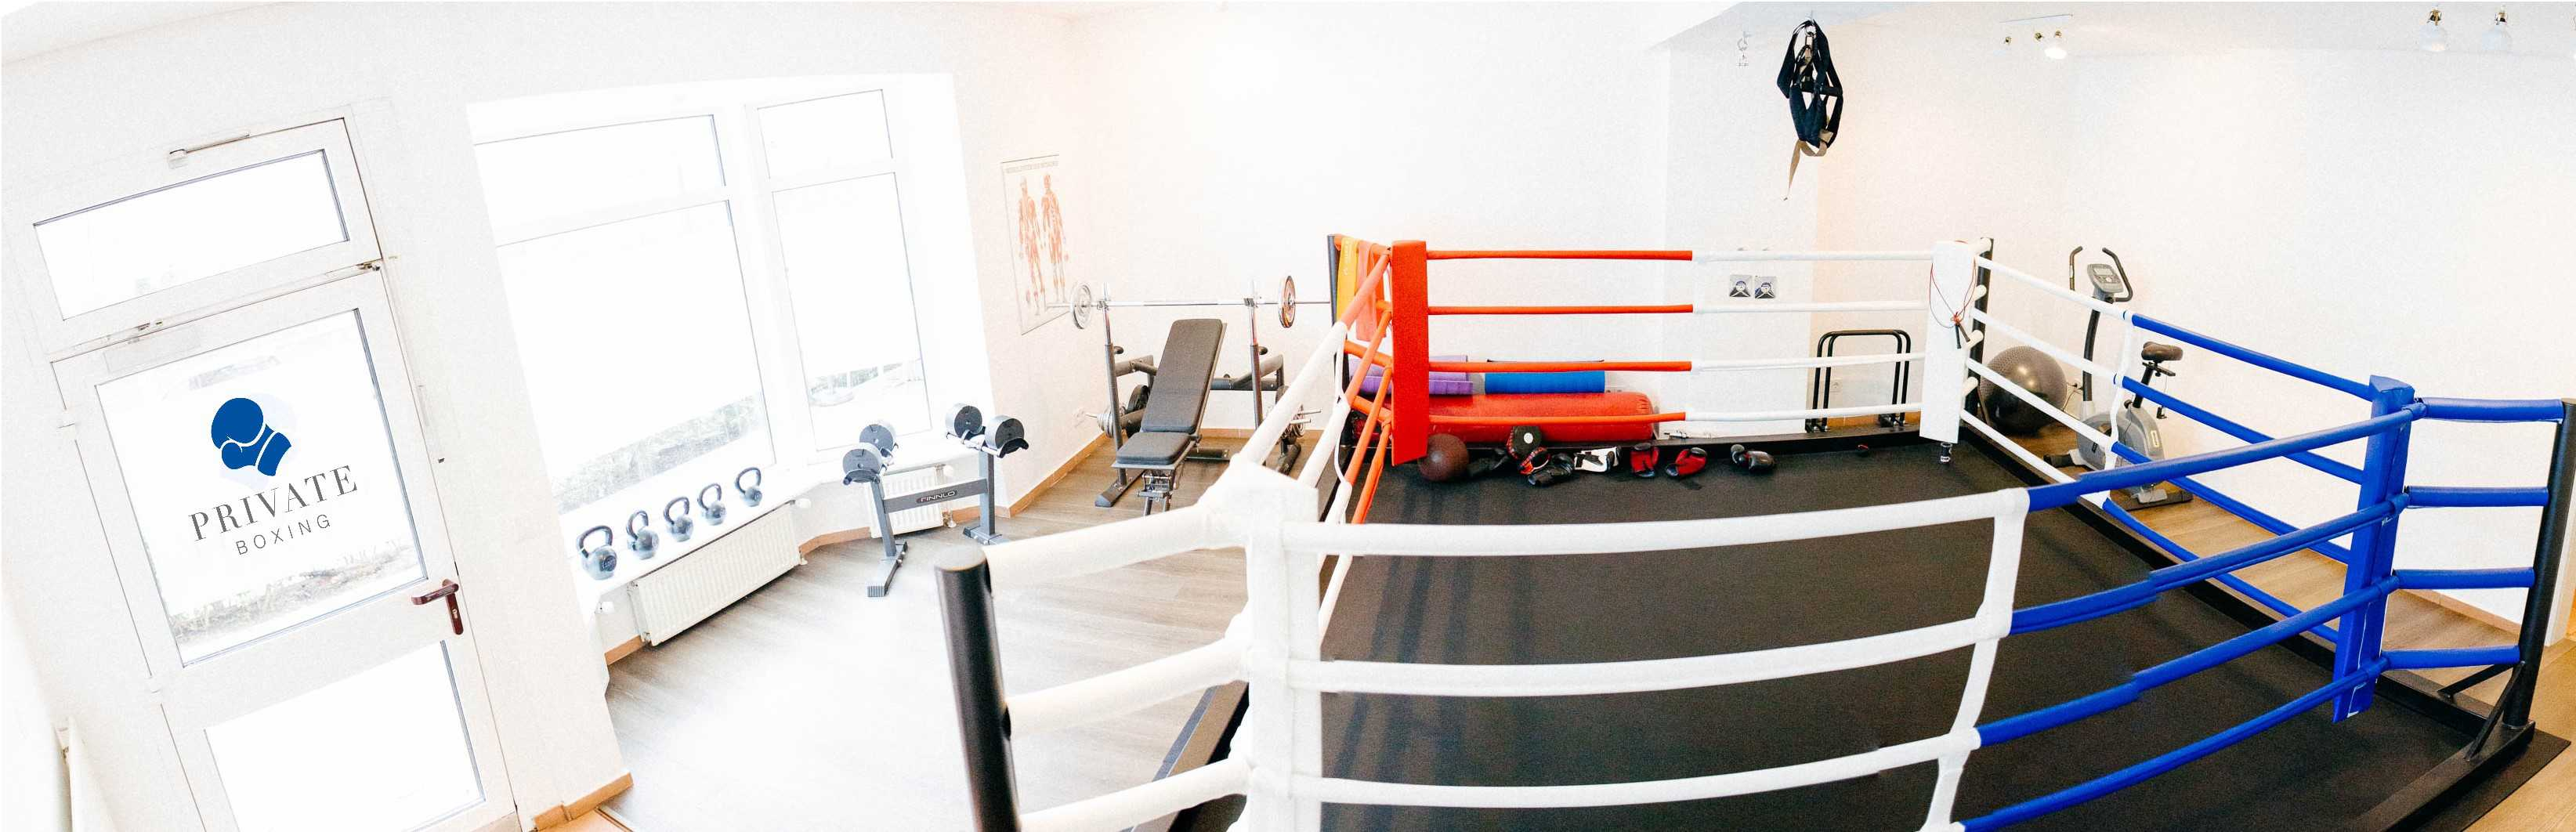 Private Boxing Gym - Personal training Hamburg